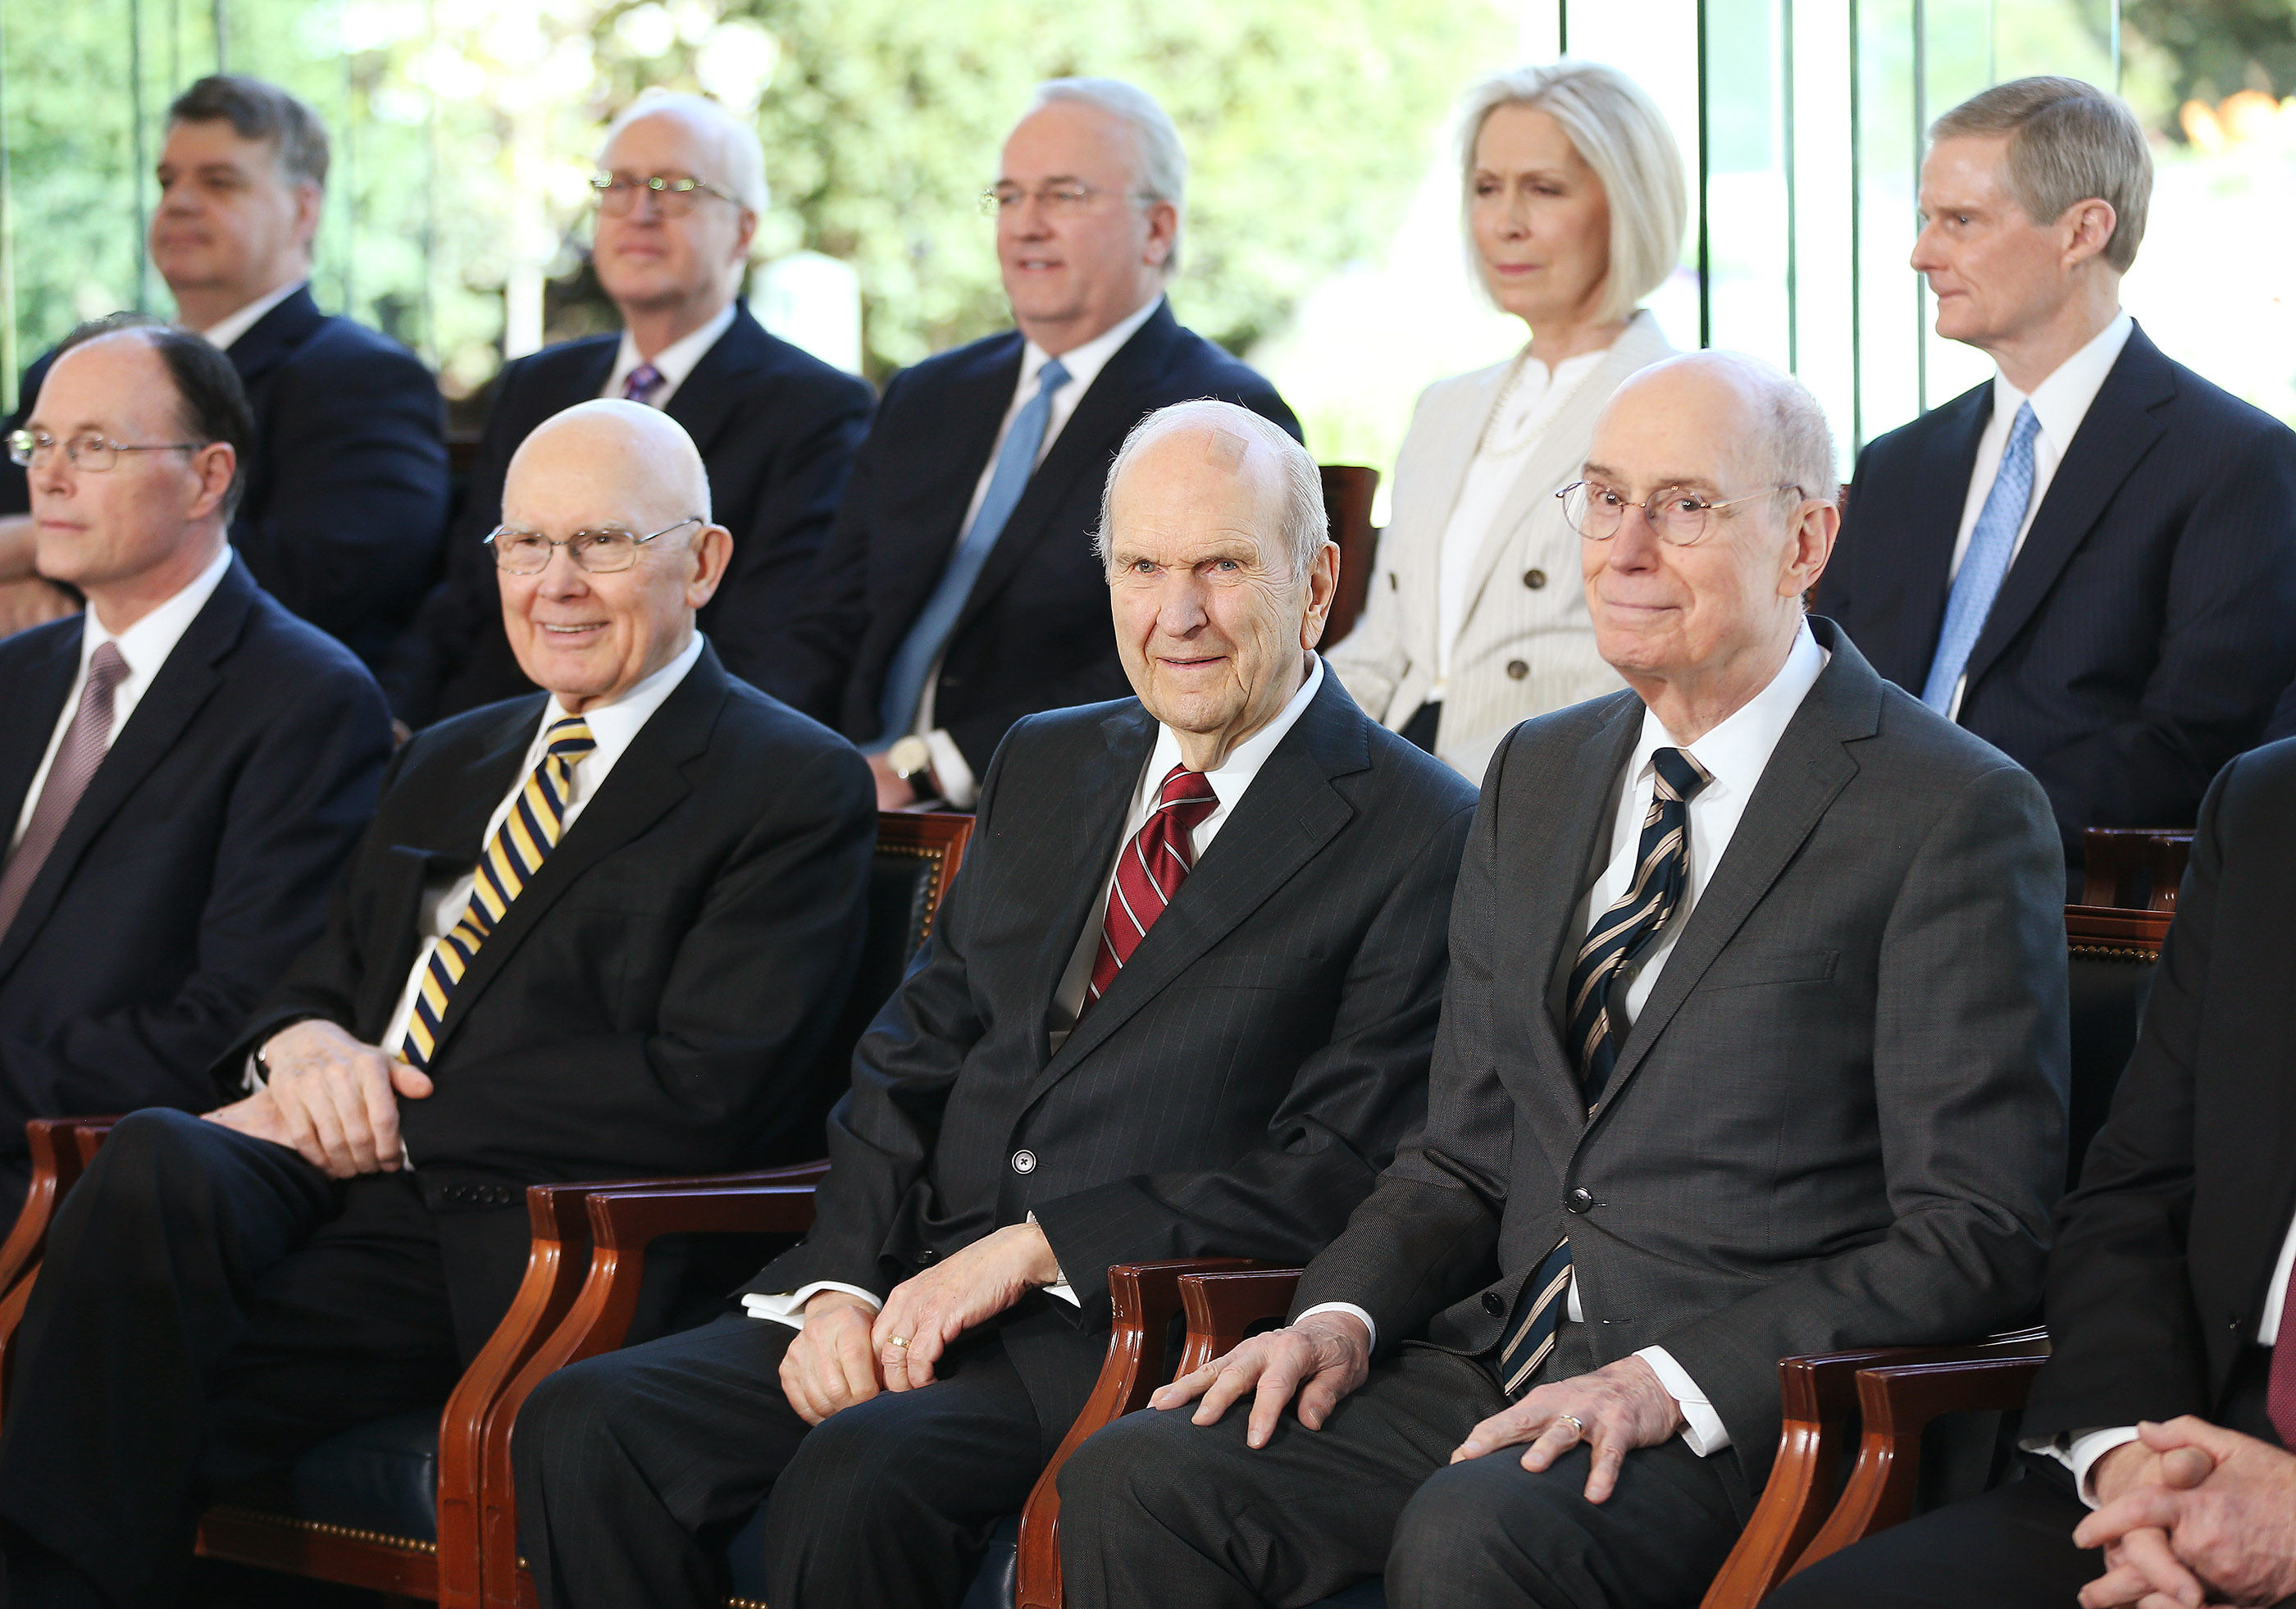 President Russell M. Nelson of The Church of Jesus Christ of Latter-day Saints, center, and his counselors, President Dallin H. Oaks, first counselor in the First Presidency, left, and President Henry B. Eyring, second counselor in the First Presidency, right, sit prior to a press conference in Salt Lake City on Friday, April 19, 2019.